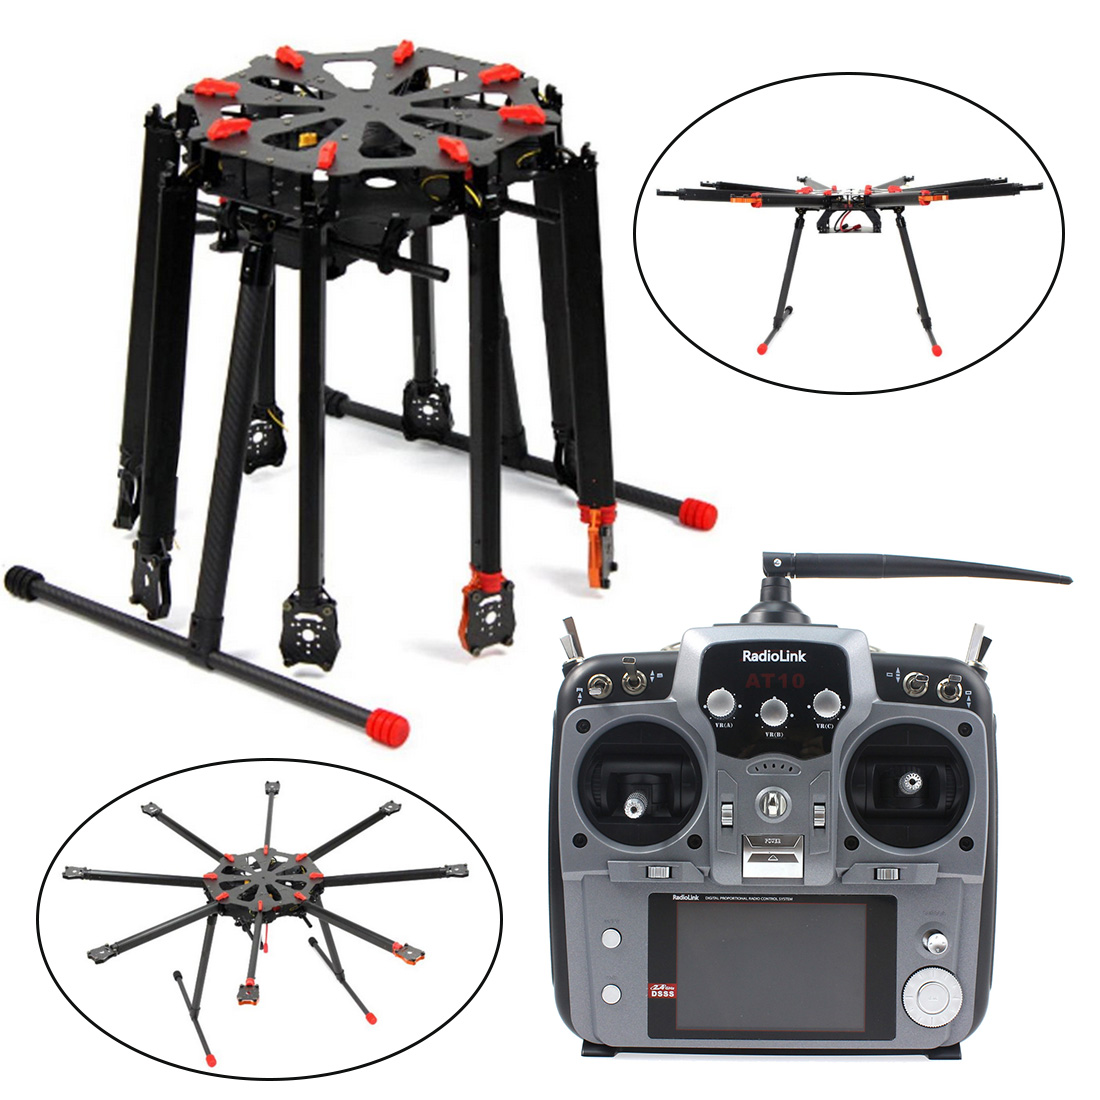 Pro 2.4G 10CH RC 8-Axle Octocopter Drone X8 Folding PIX PX4 M8N GPS ARF/PNF DIY Unassembly Kit Motor ESC F11270-A/B/C